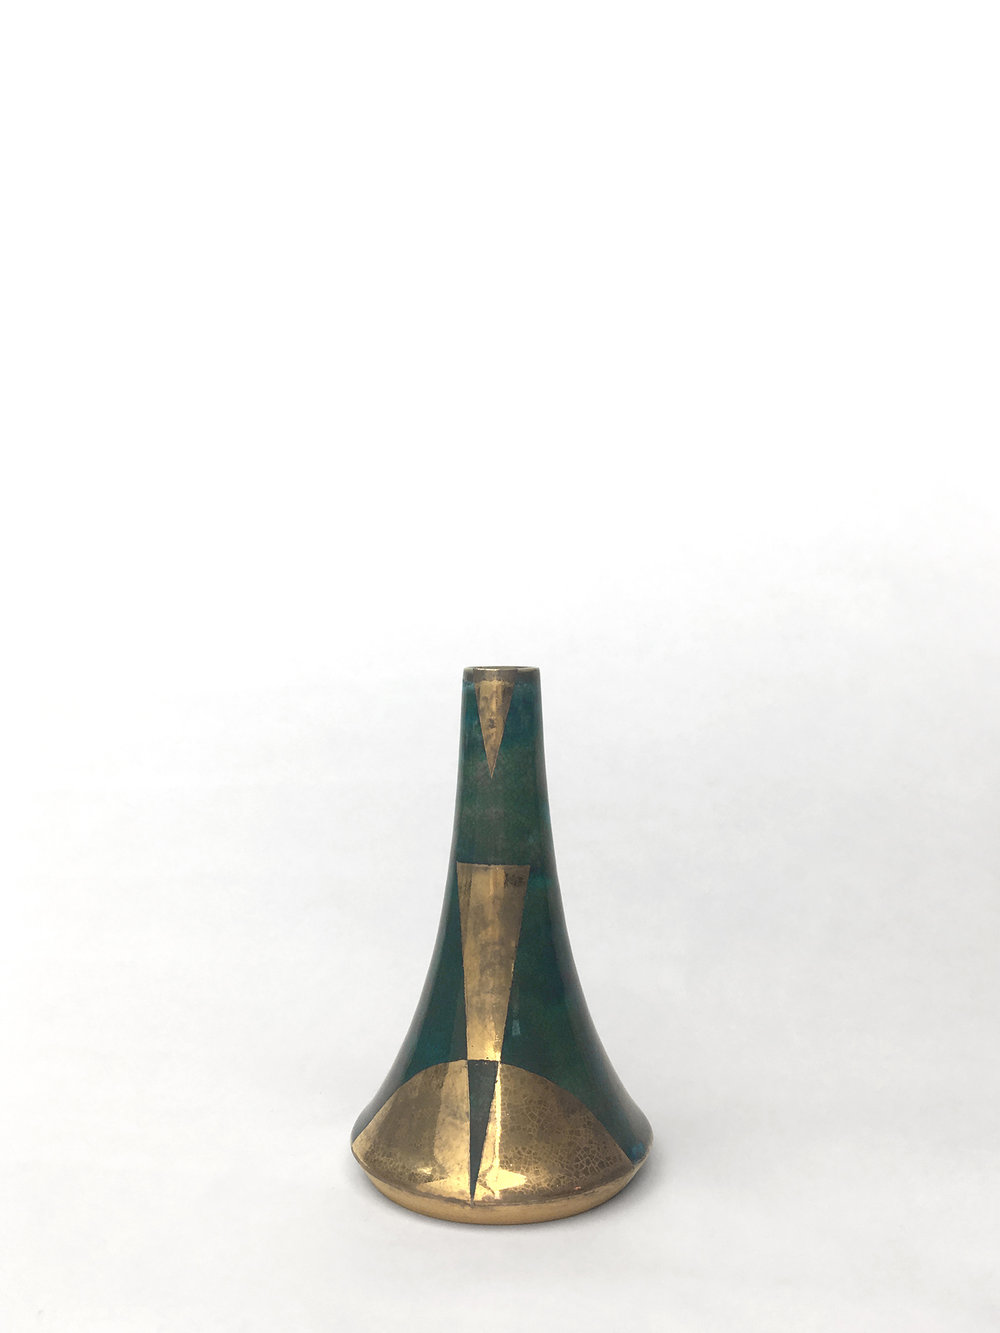 "Small volcano vase, hand-thrown porcelain with oribe glaze and gold luster geometric design, 4 1/2"" x 2 3/4"", $150"